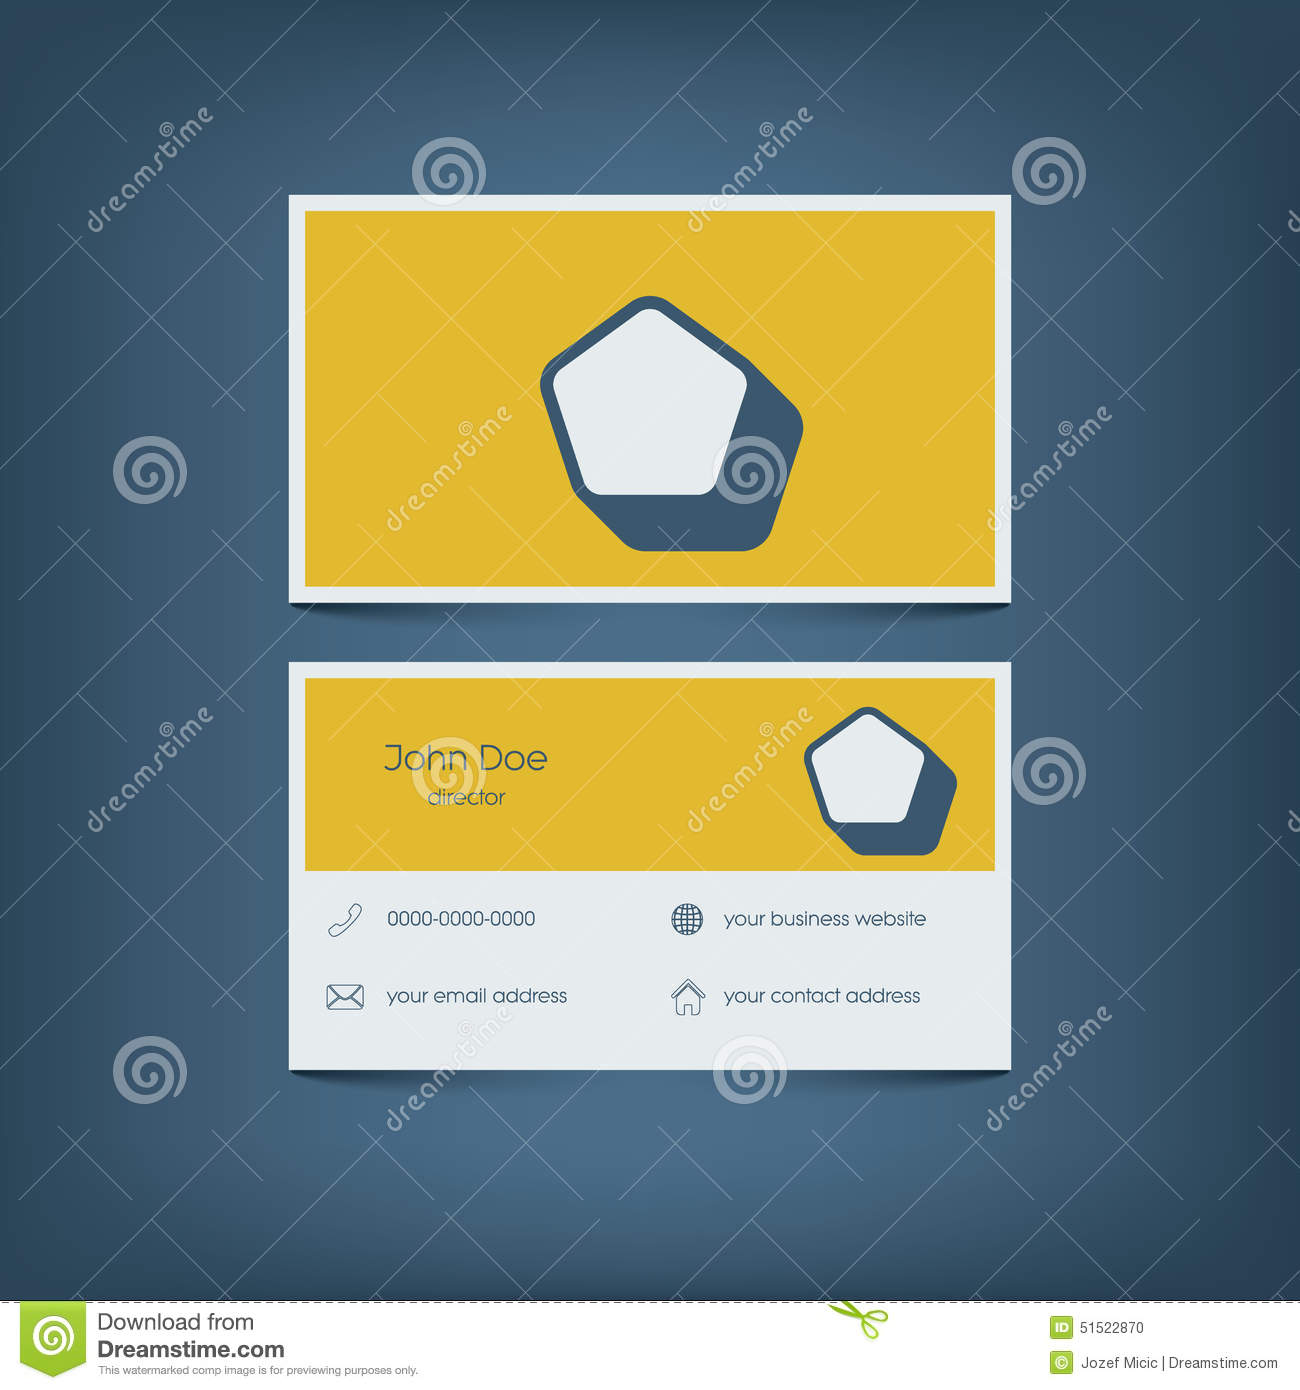 Modern flat design business card template graphic stock vector modern flat design business card template graphic user interface with line icons for website email contact phone mobile and home address cheaphphosting Image collections